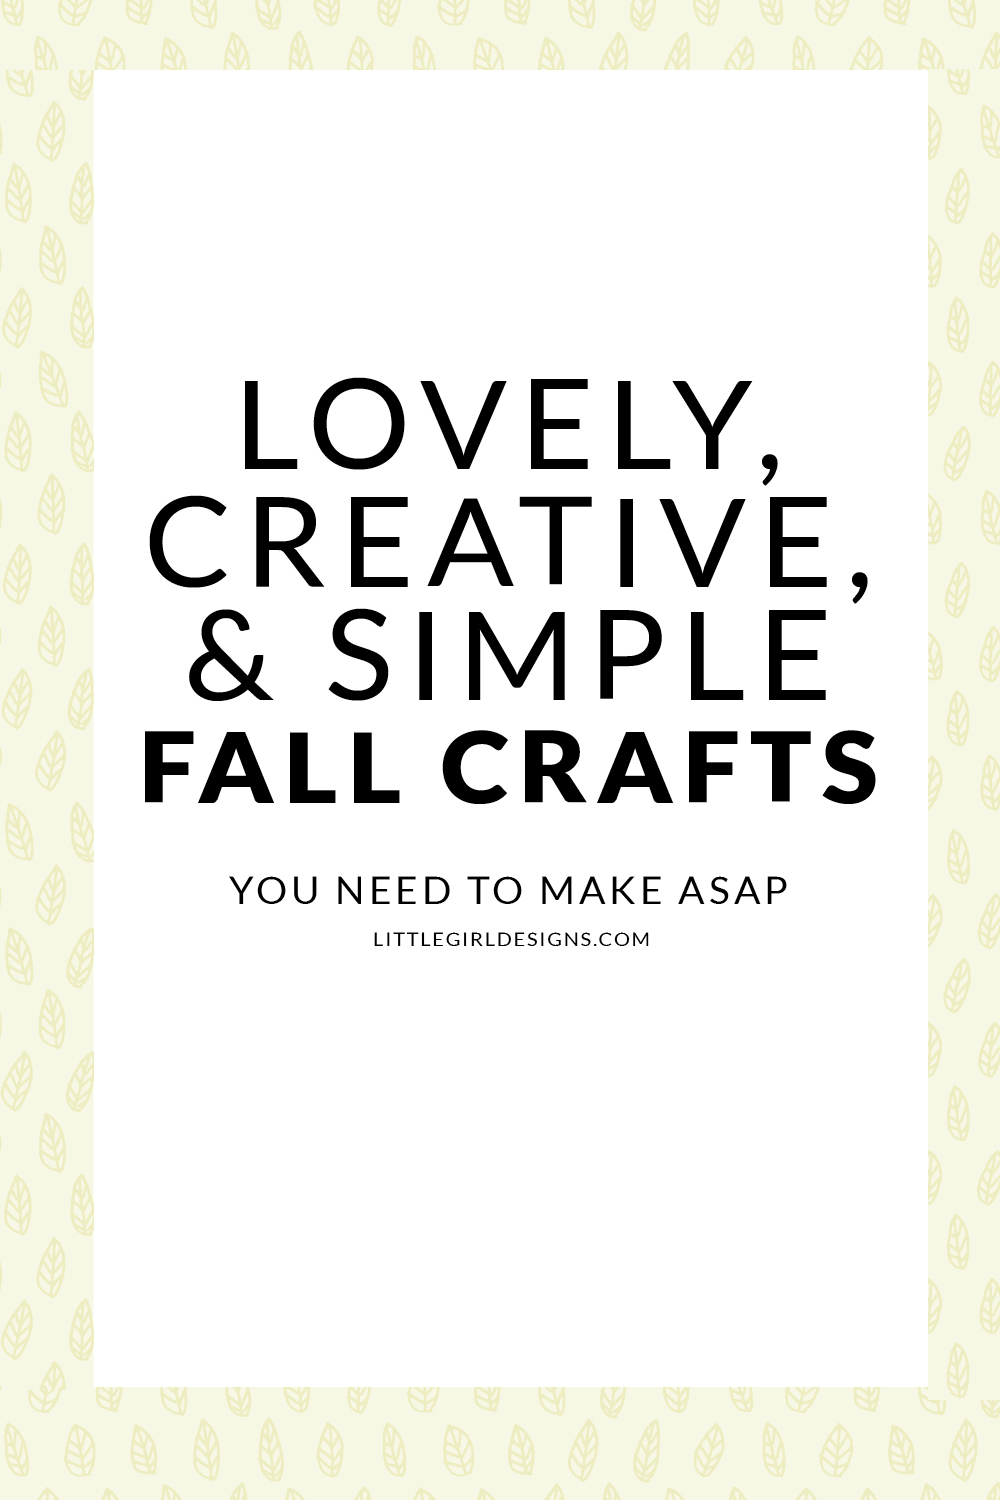 Lovely, Creative, & Simple Fall Crafts that you've got to try this year! Learn how to preserve leaves, paint a gorgeous watercolor leaf, and make a book page pumpkin! Too much fun @ littlegirldesigns.com